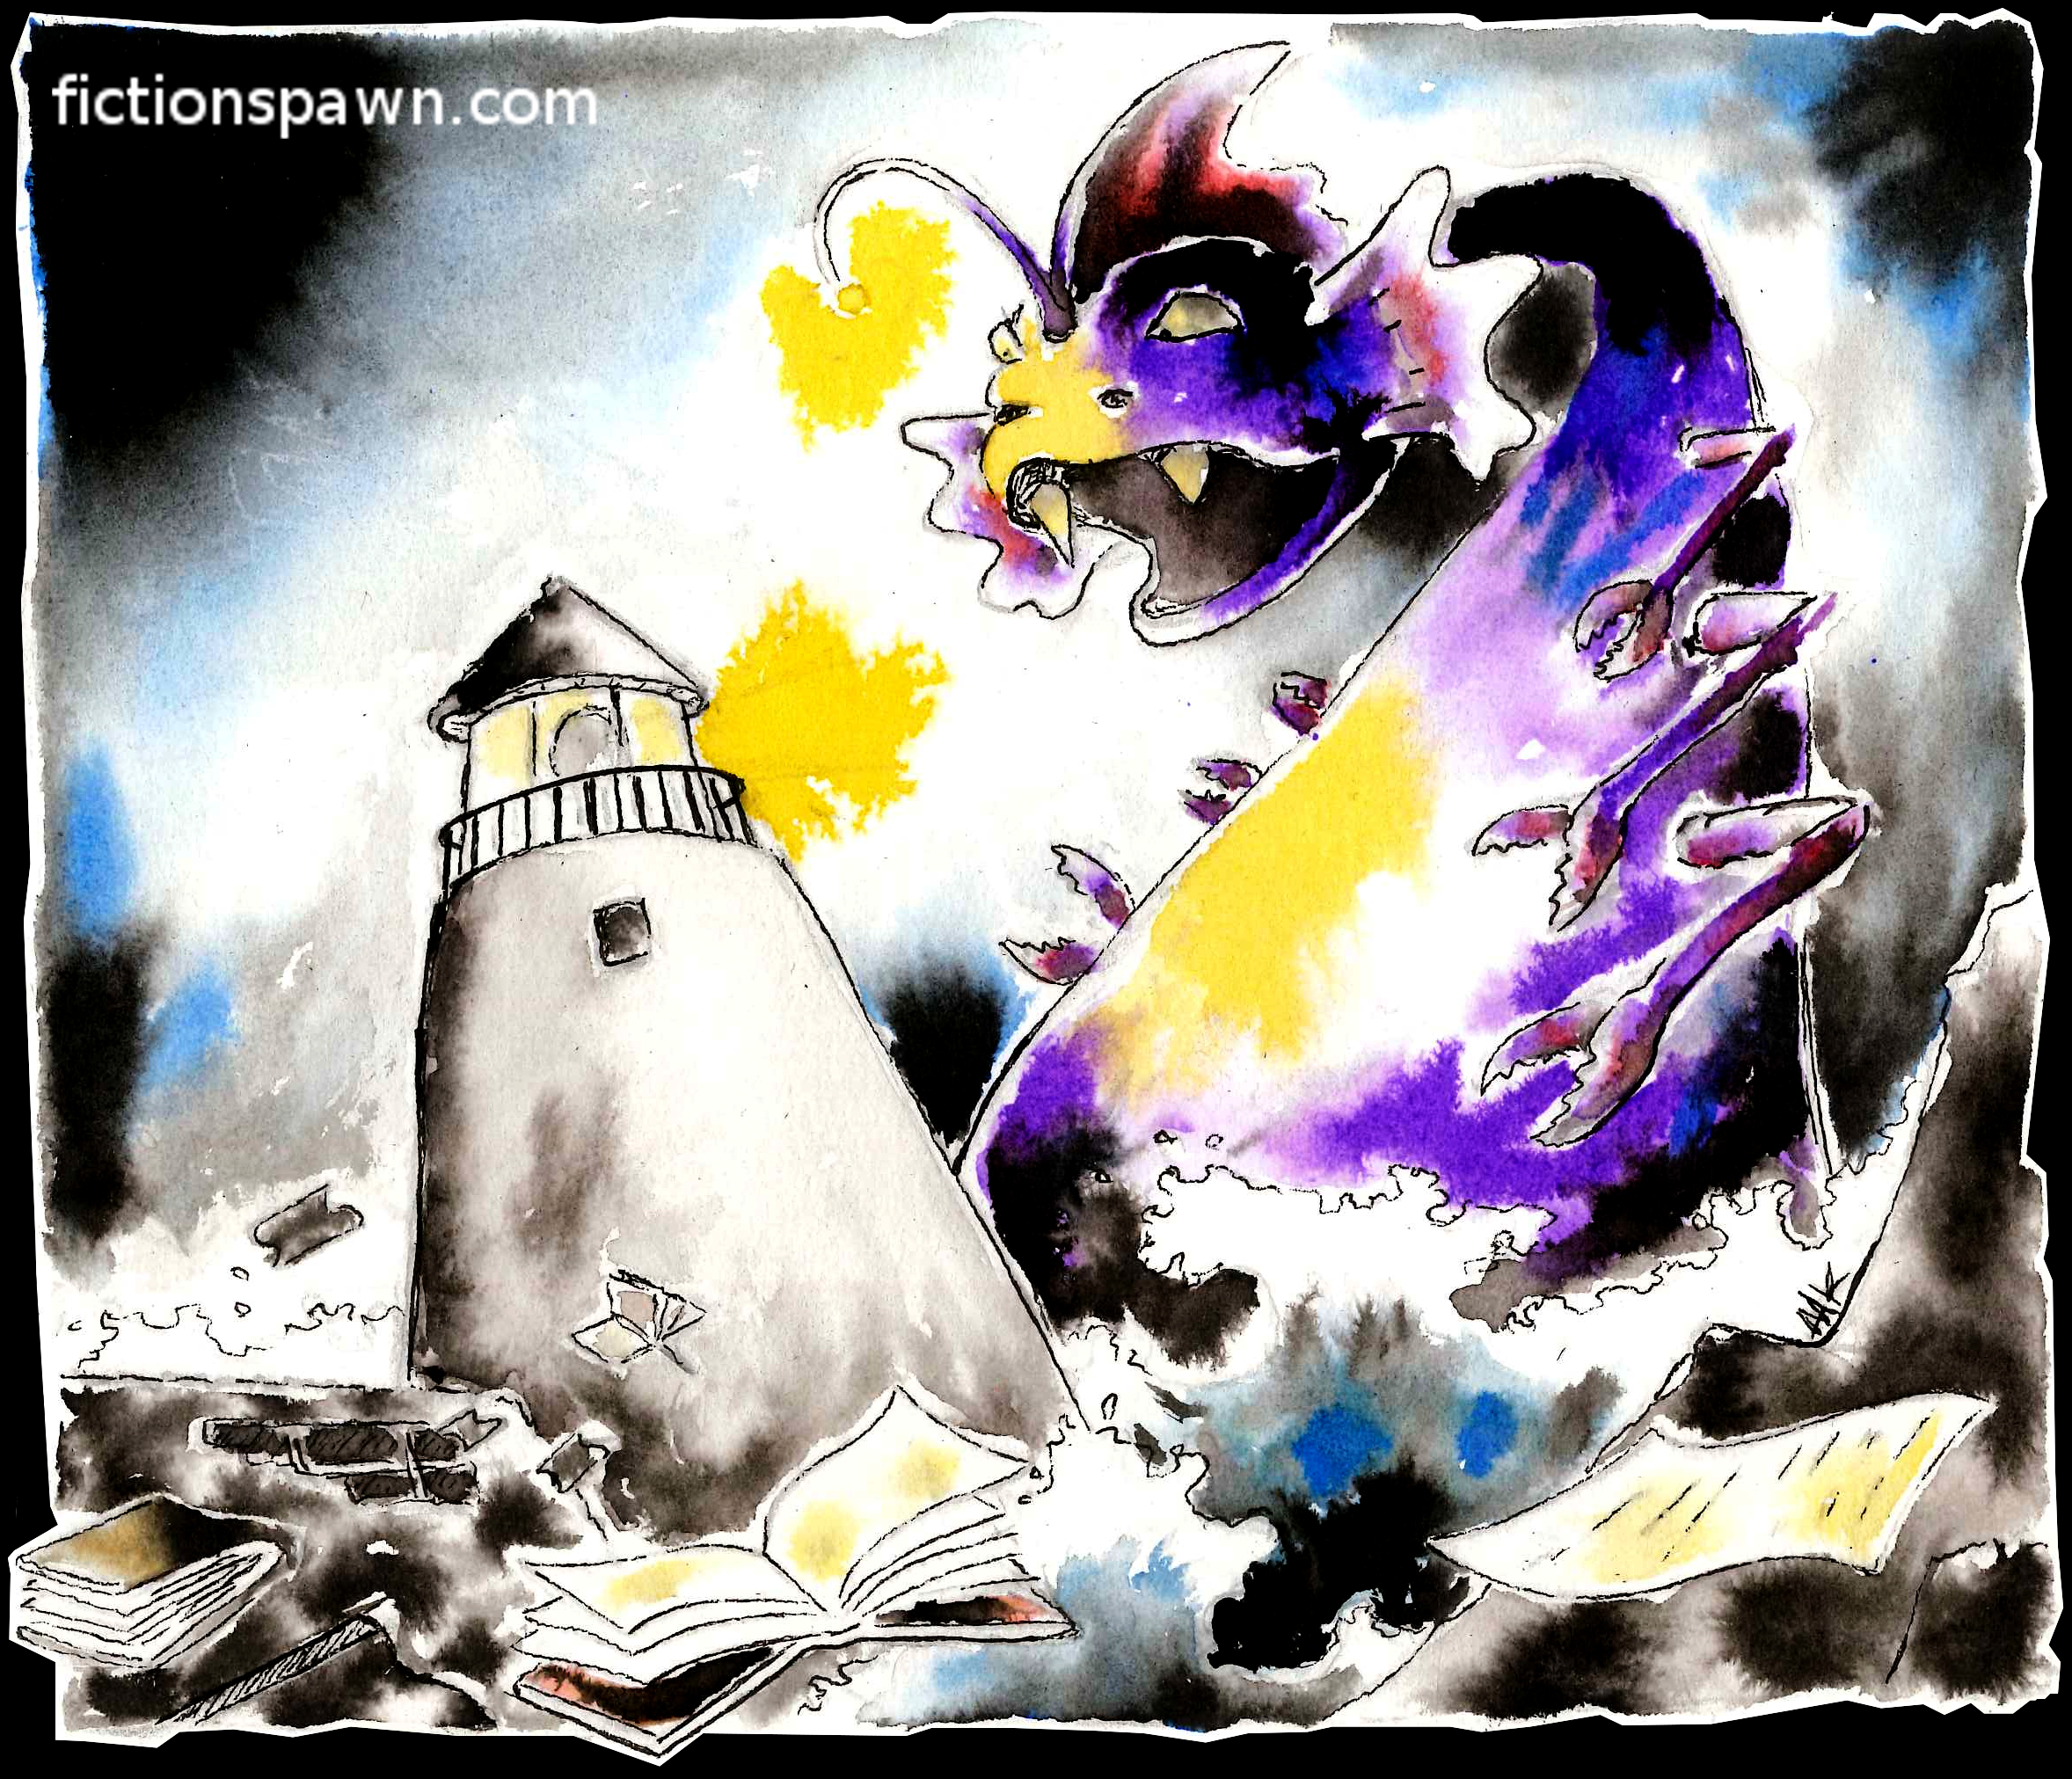 A monster and a lighthouse. Aak fictionspawn